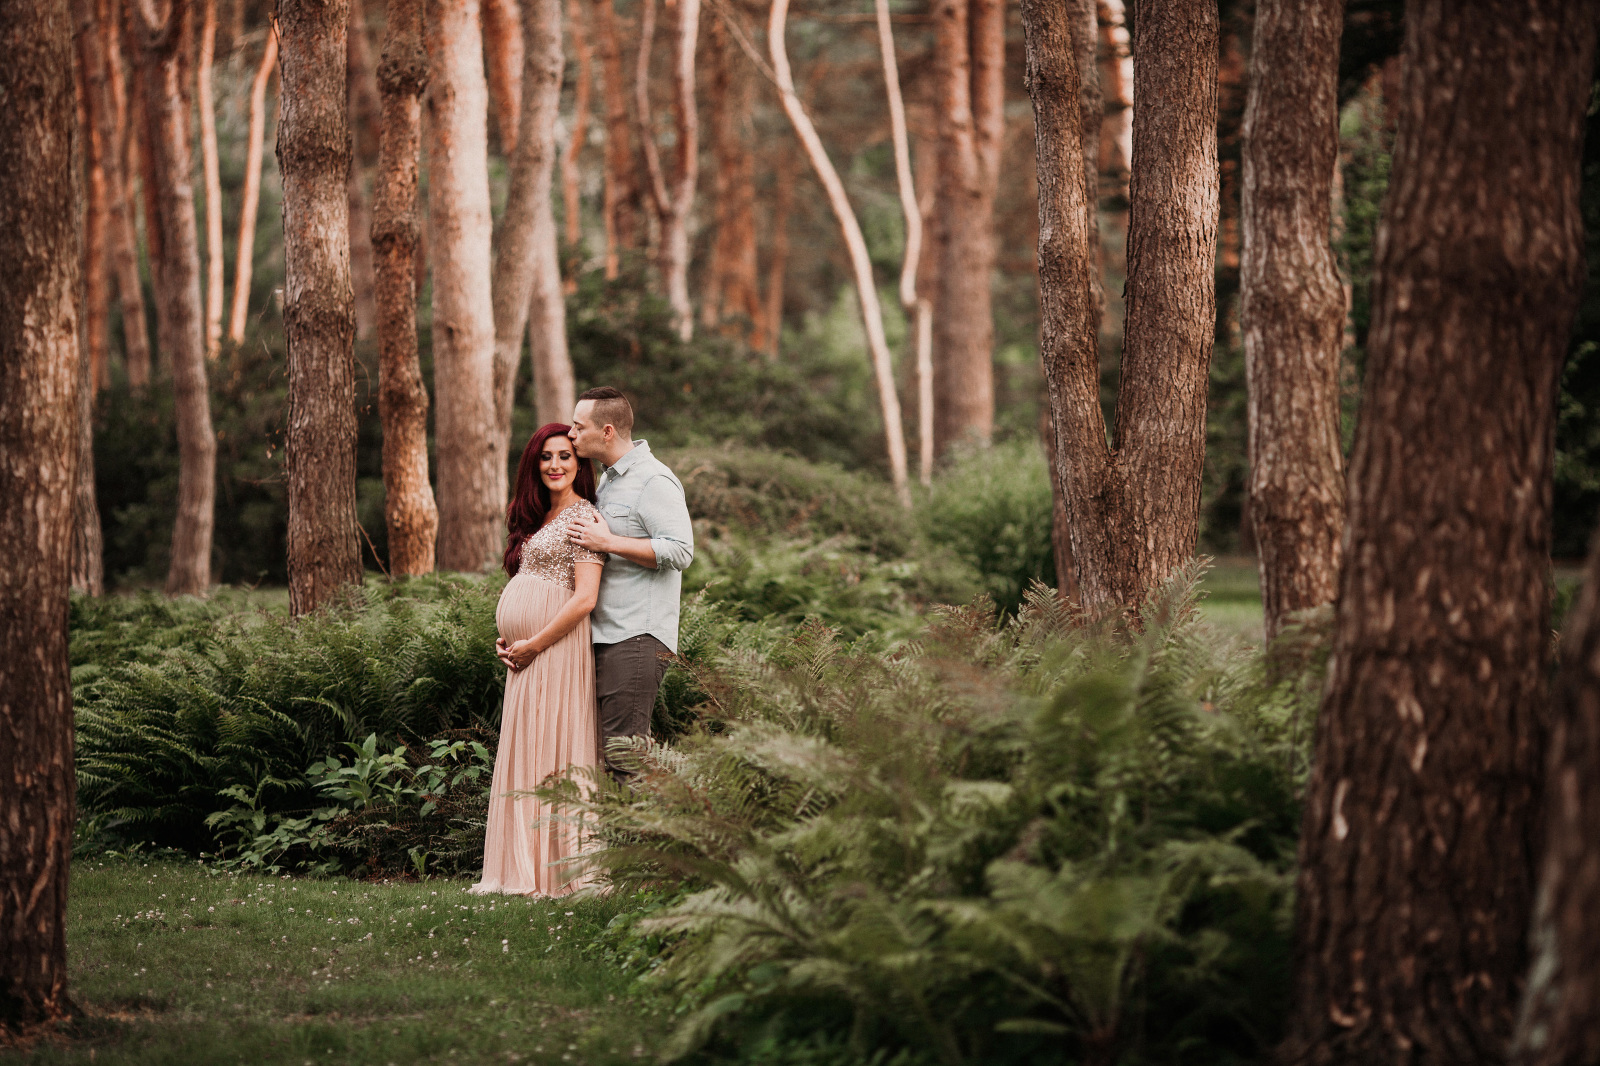 Outdoor maternity session of couple taken at flower field in Cleveland Ohio with blush maternity gown